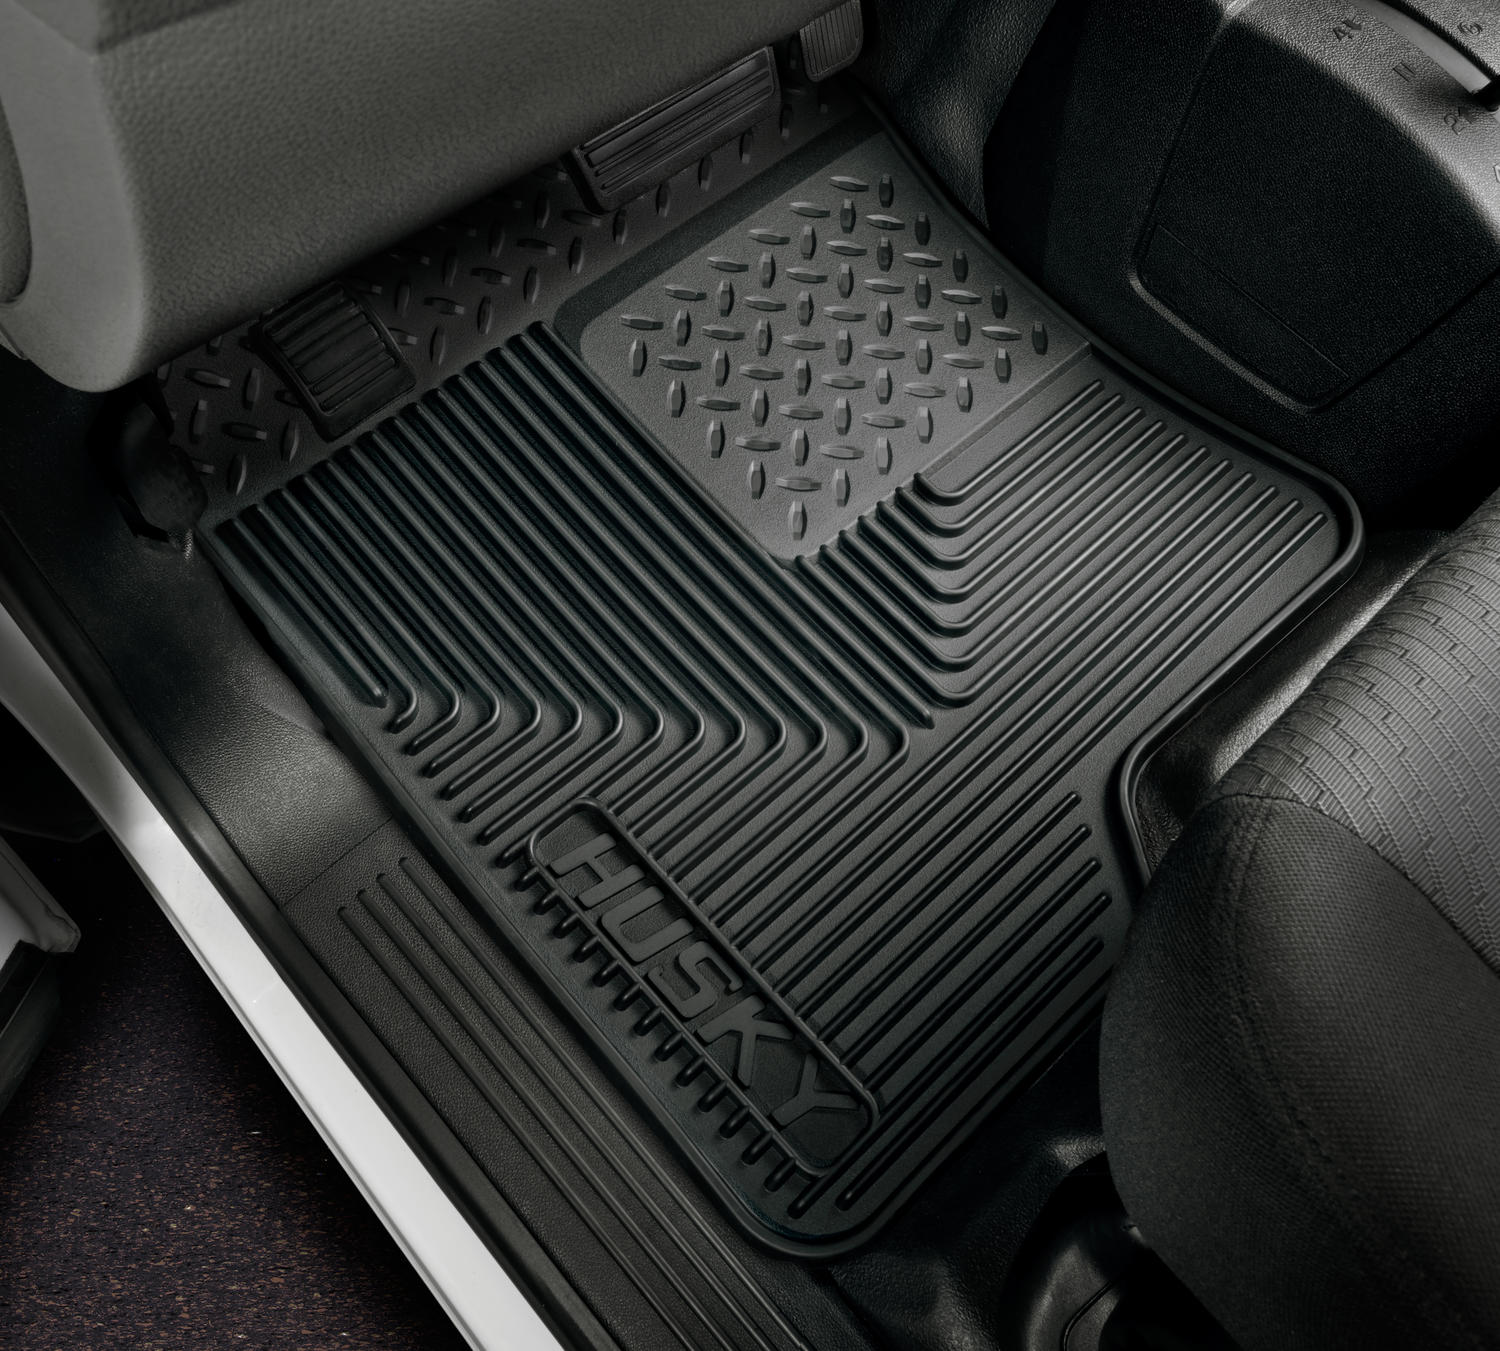 duty black itm rubber mat heavy on mats ford floor fit tailored tourneo custom sentinel